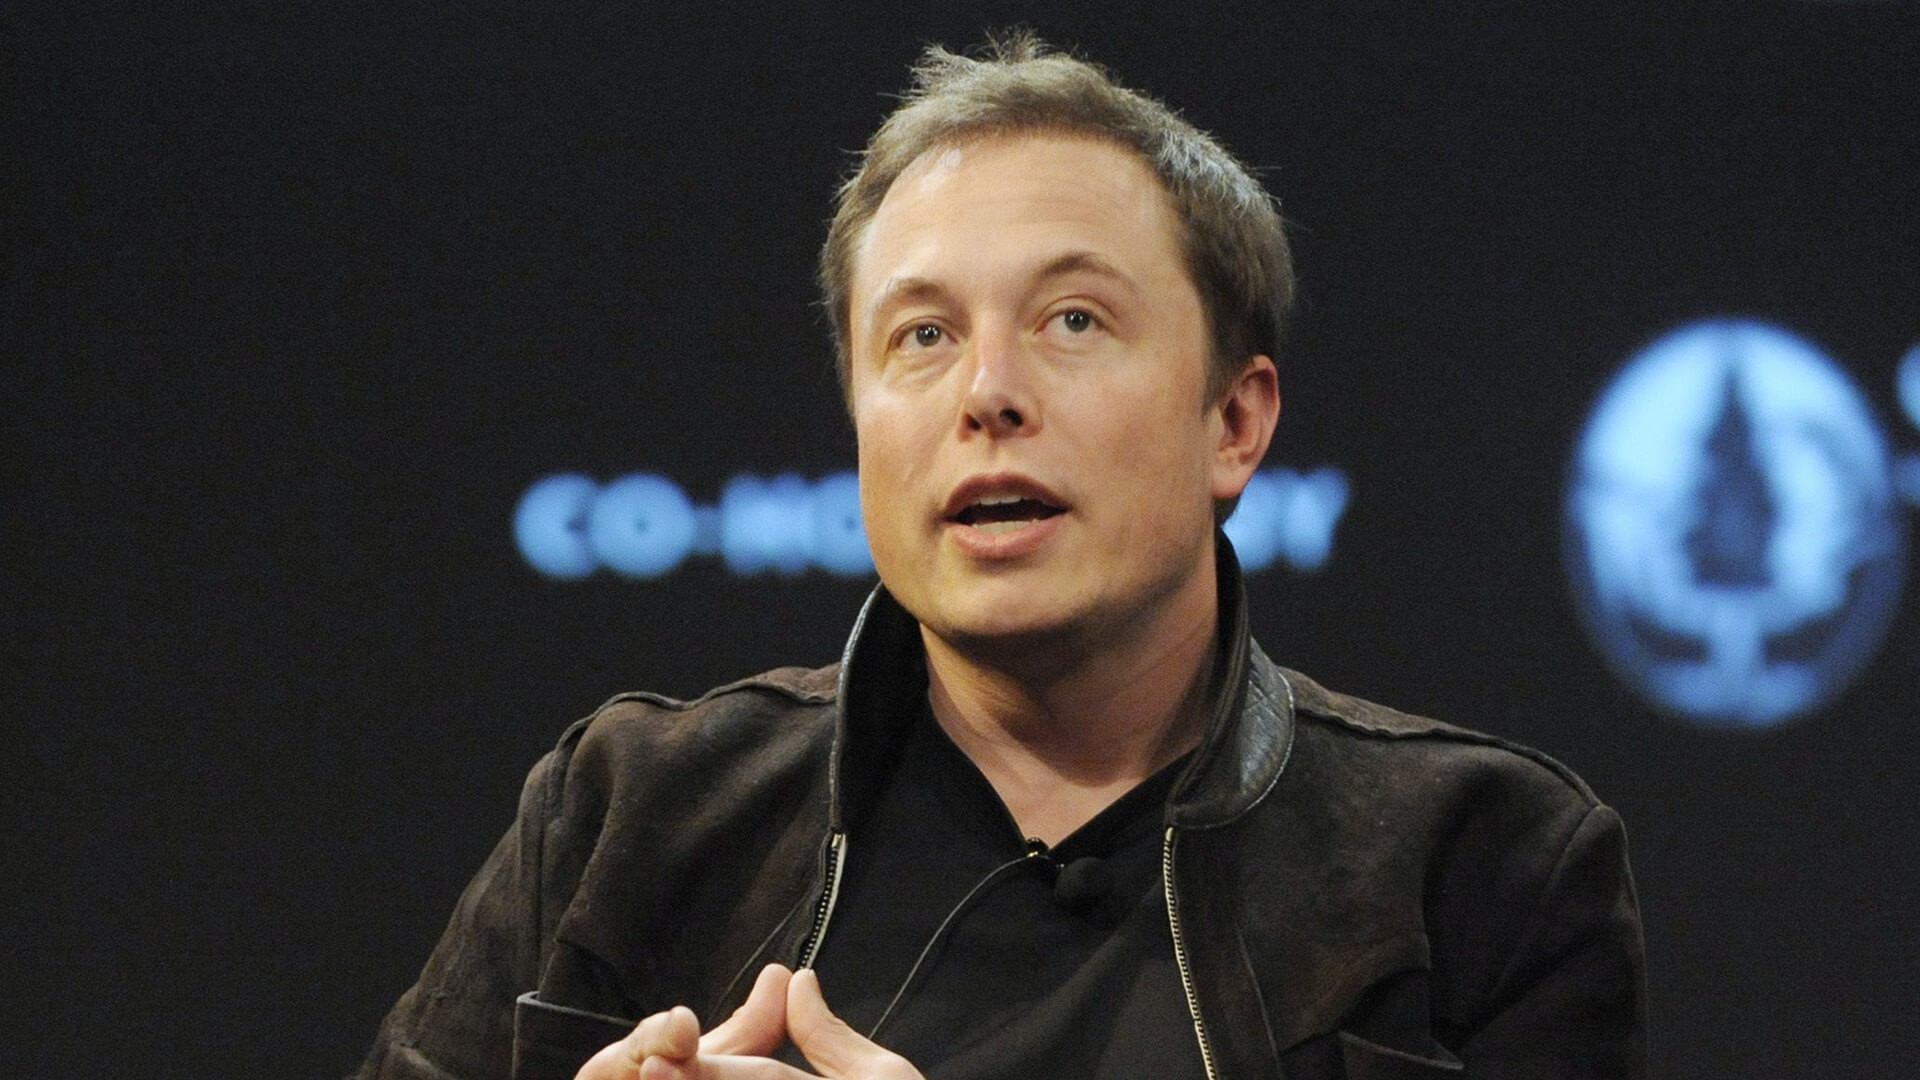 Photo by Peter Foley/EPA/REX/Shutterstock (7718562c)Elon Musk Chief Executive Officer of Tesla Motors Inc Speaks at a Discussion Panel After a Screening of 'The Revenge of the Electric Car' at the Tribeca Film Festival in New York Usa 23 April 2011 the Tribeca Film Festival Runs Through 01 May 2011 United States New YorkUsa Tribeca Film Festival - Apr 2011.